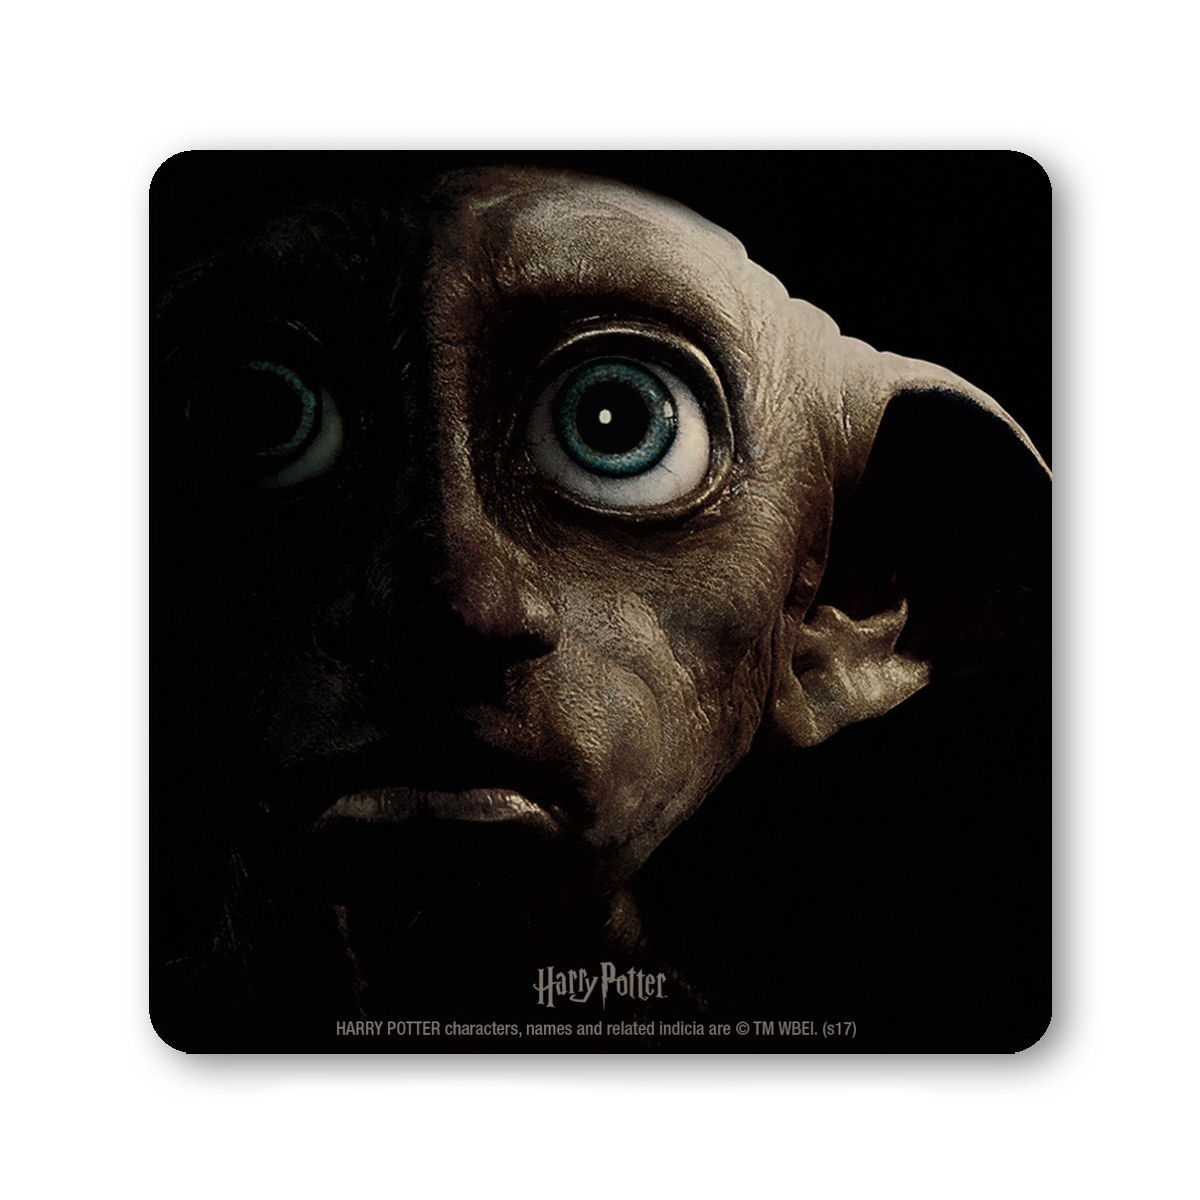 Harry Potter Dobby Film Portrait Coaster